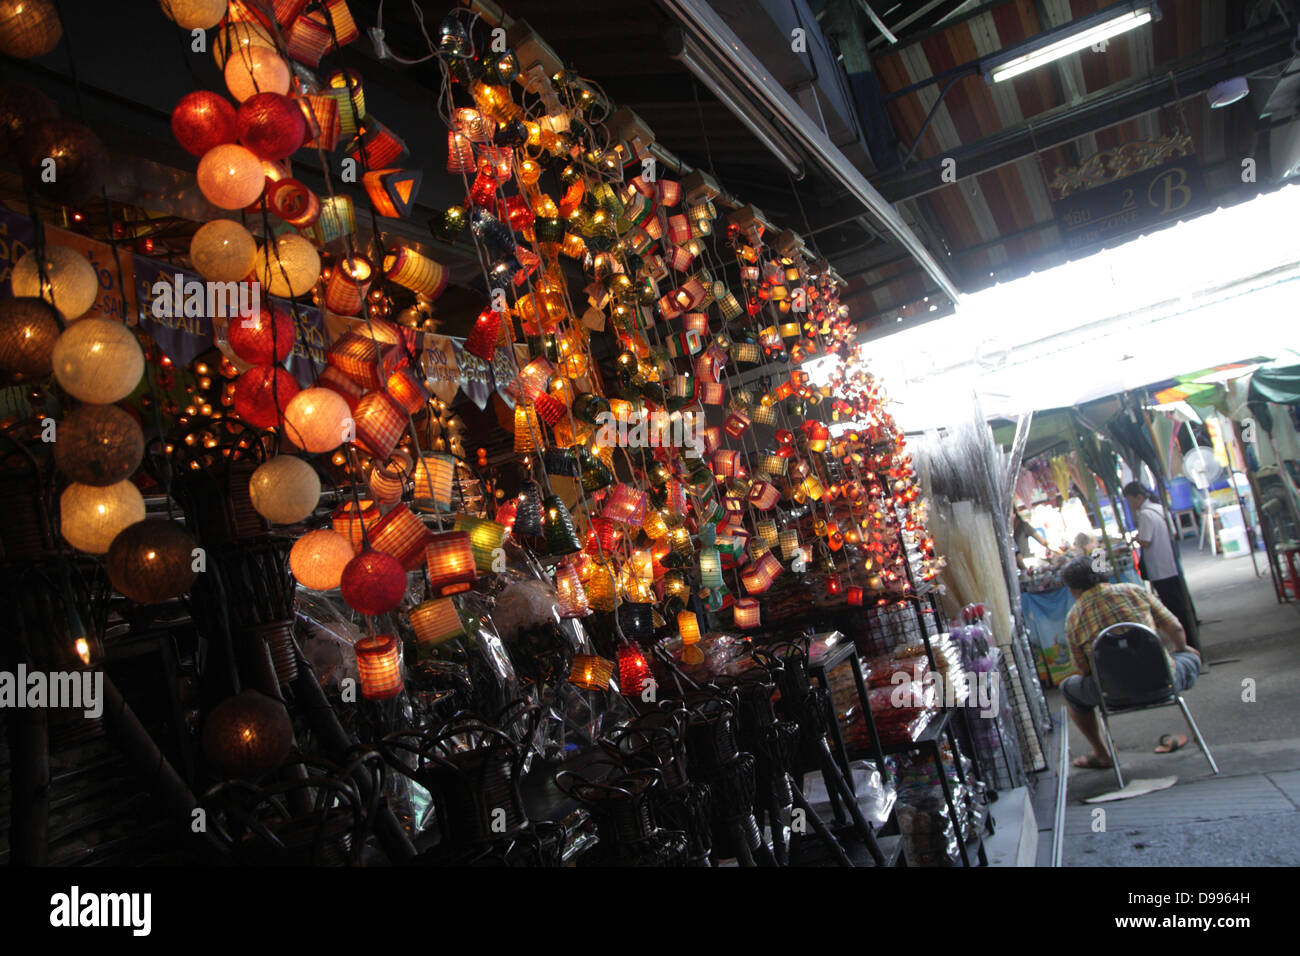 Fancy Light Decorated In A Home Decor Shop At Chatuchak